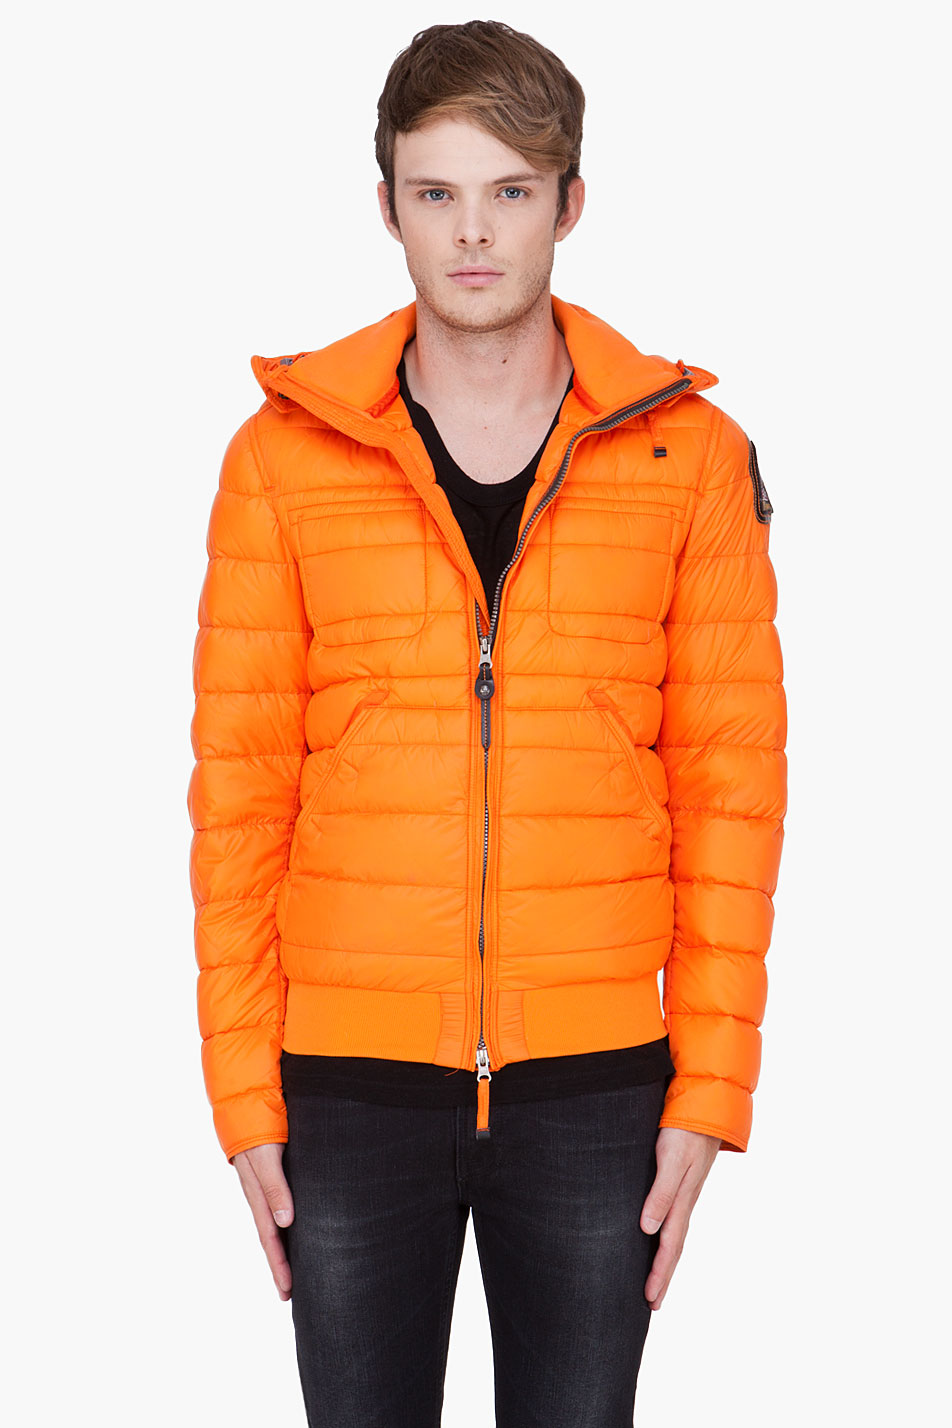 parajumpers JACKETS ORANGE